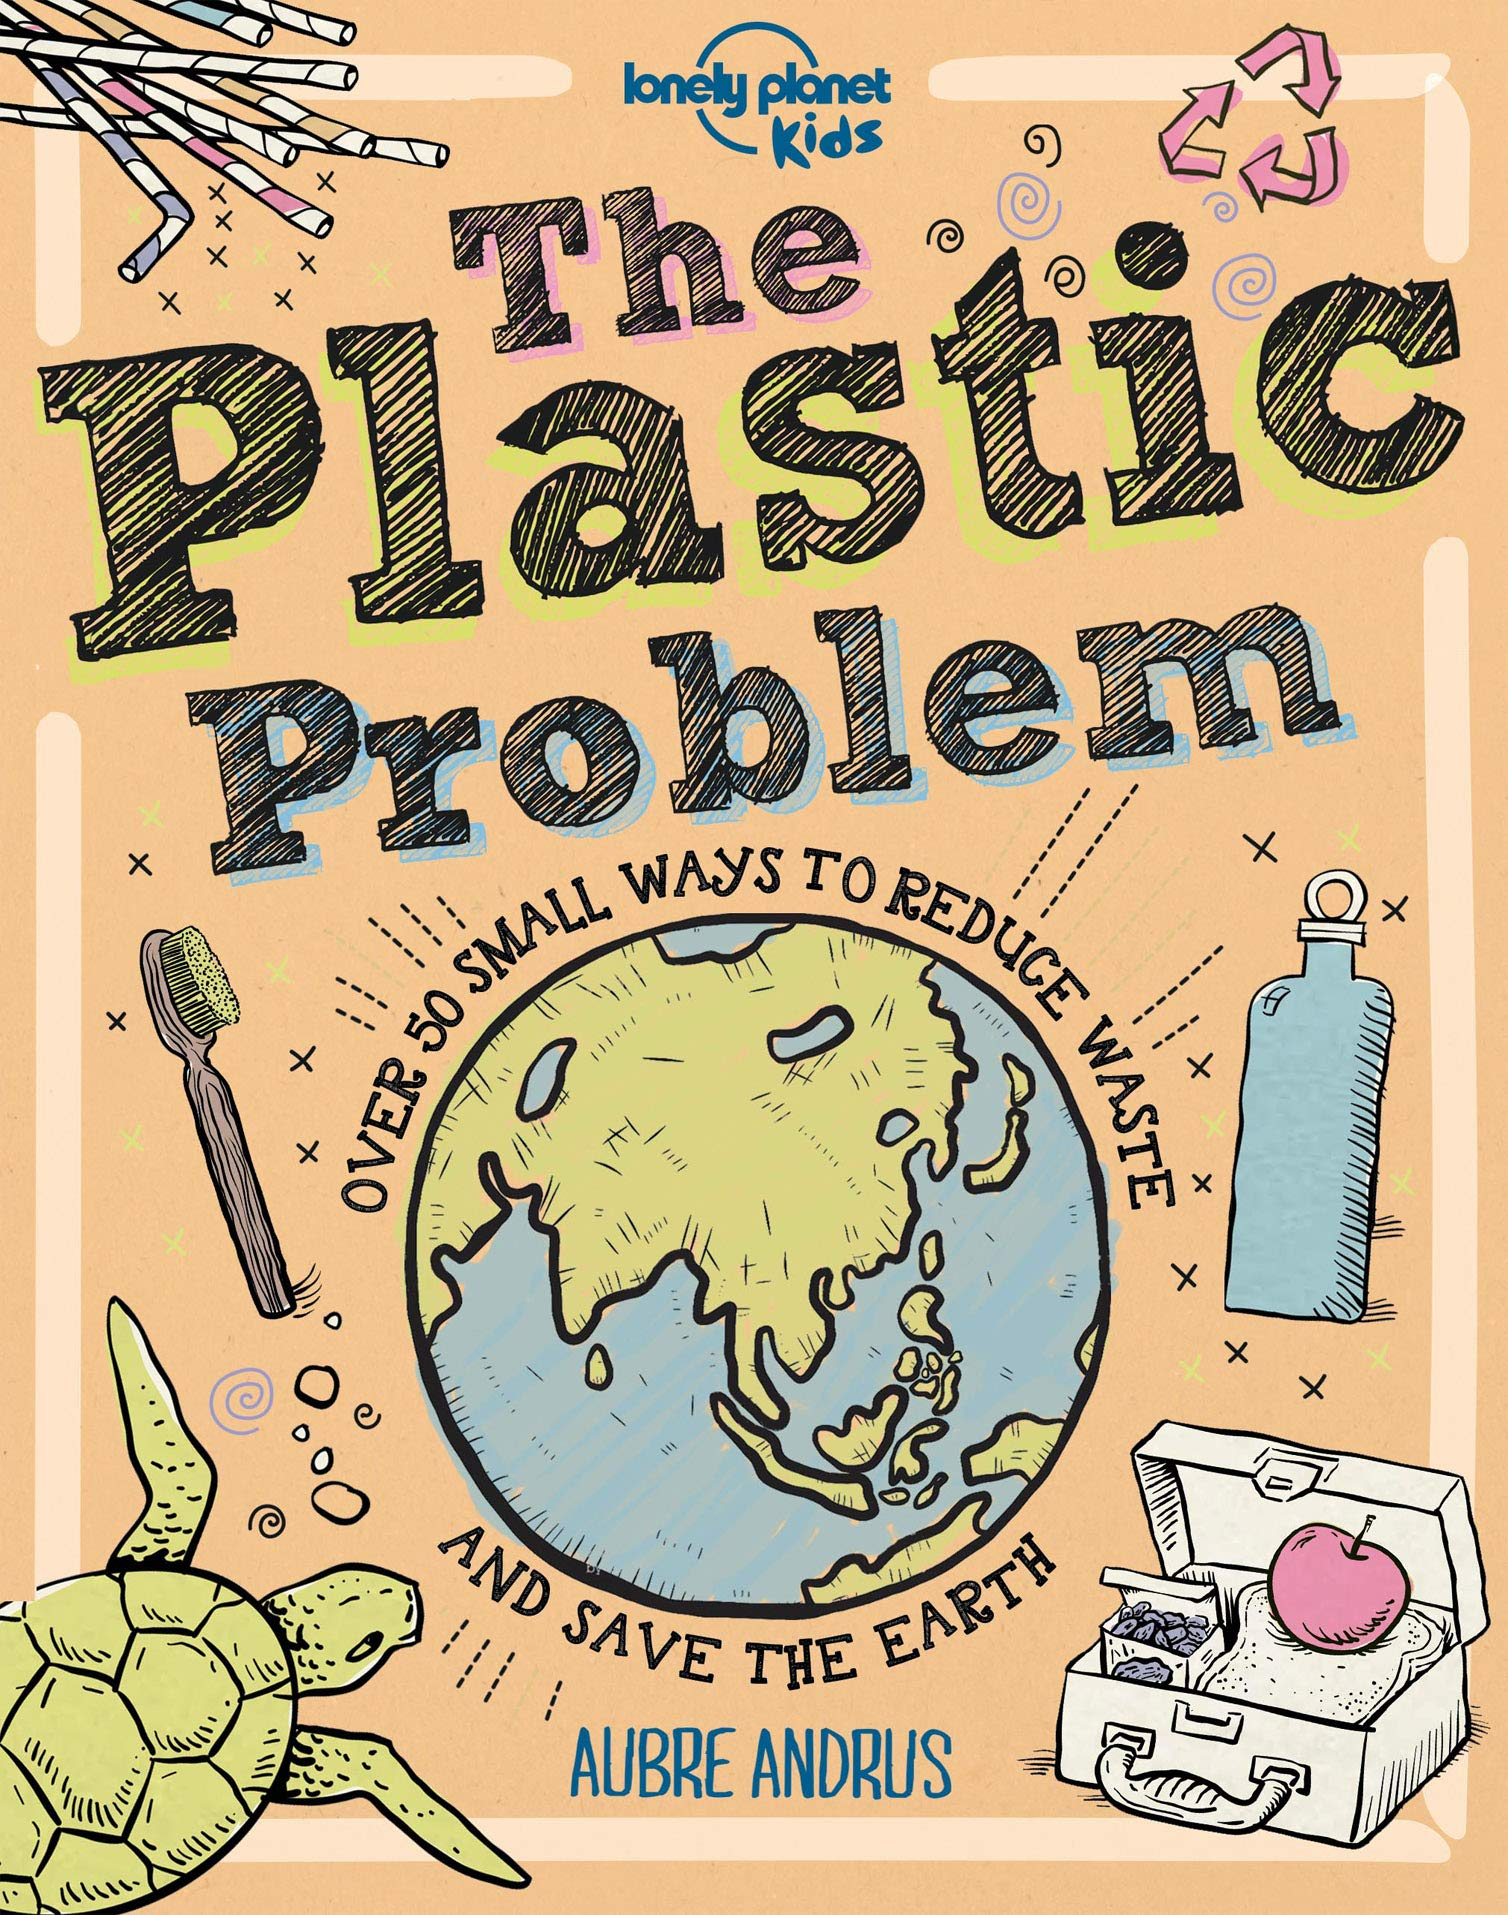 The Plastic Problem: 60 Small Ways to Reduce Waste and Save the Earth